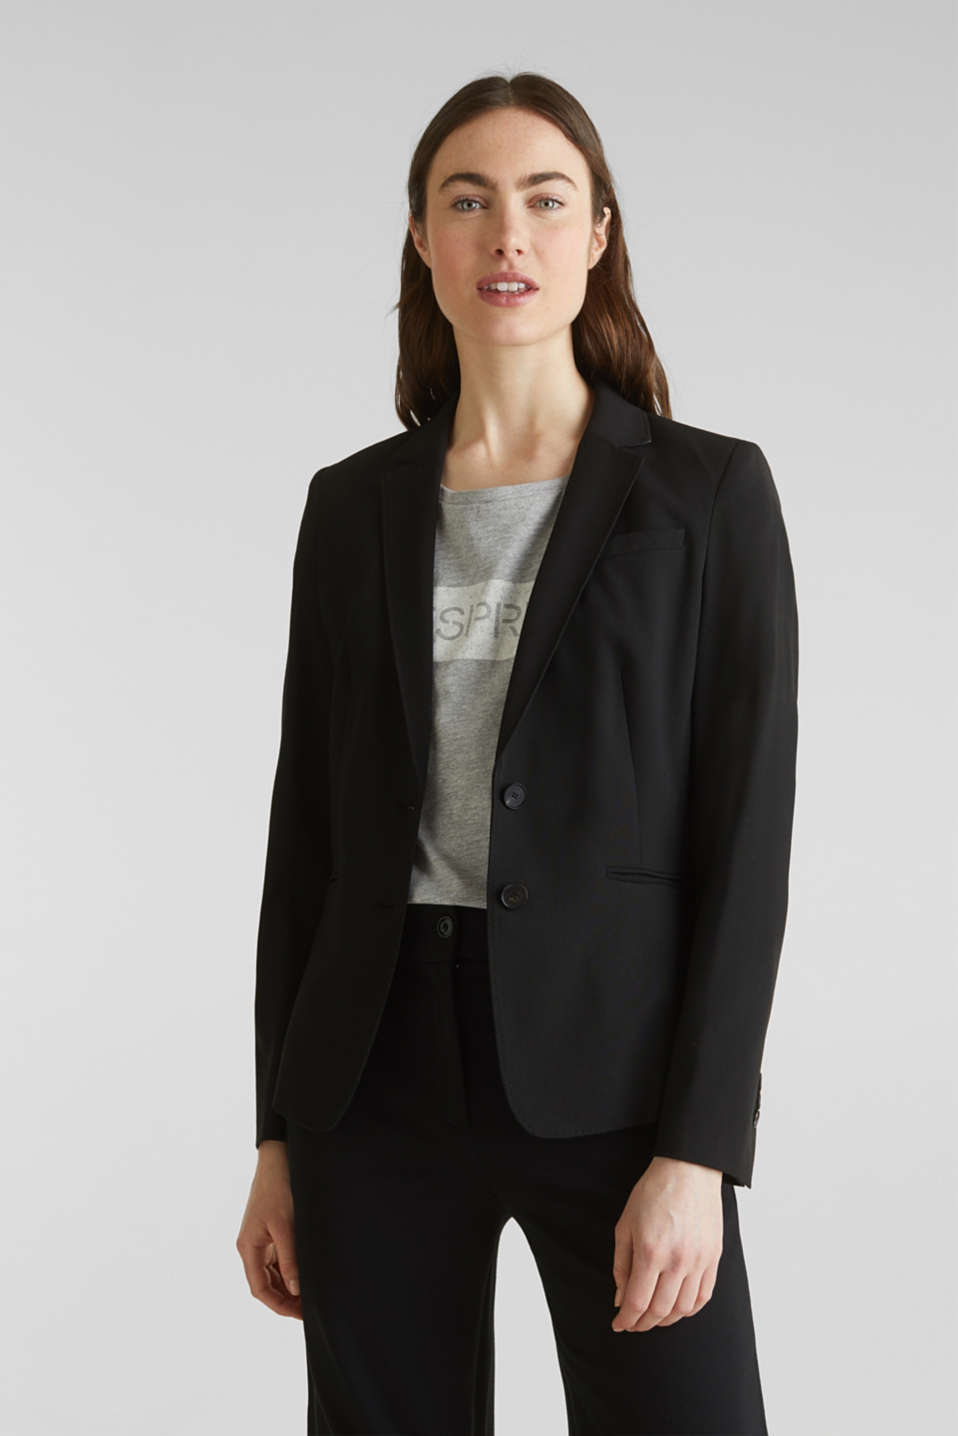 Esprit - PURE BUSINESS: blazer elástico mix + match